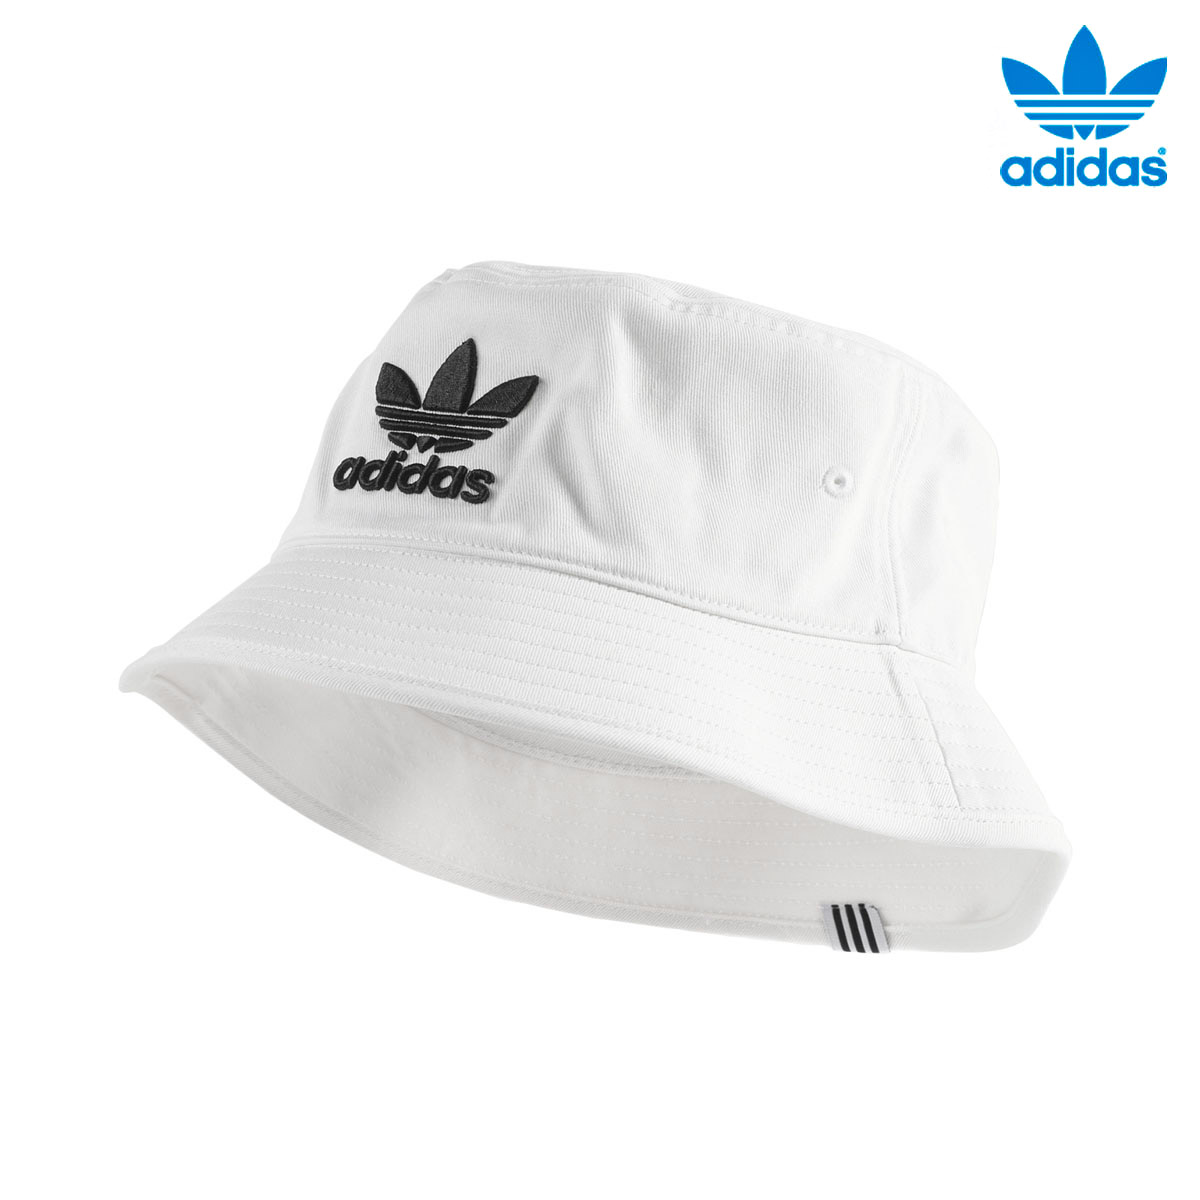 54b324d7800 adidas Originals BUCKET HAT AC (Adidas original Suva blanket hat AC) WHITE  18SS-I